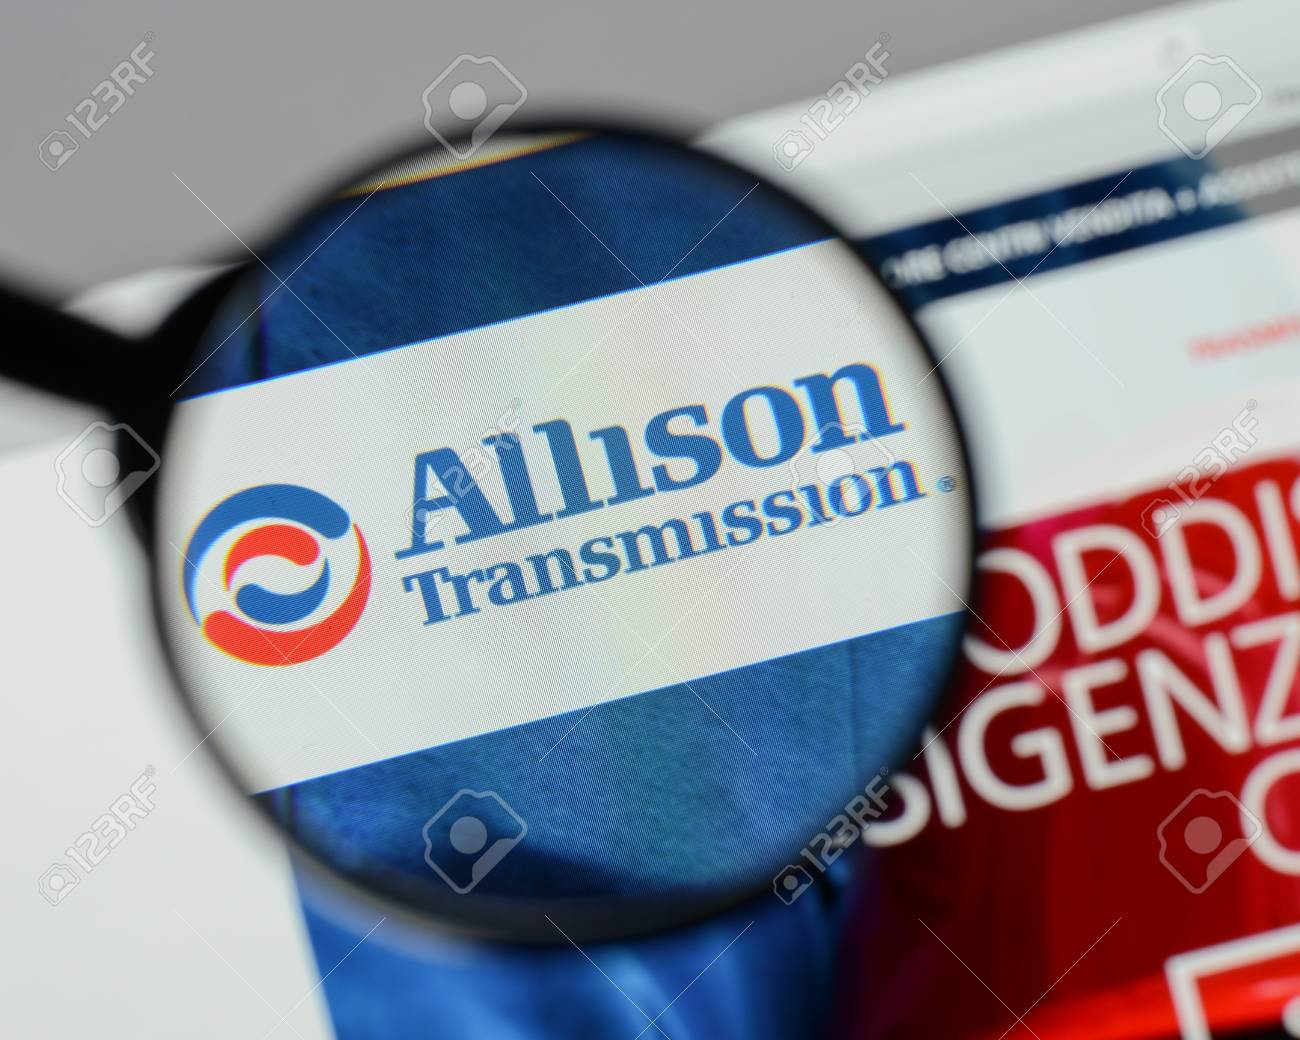 Milan Italy August 10 2017 Allison Transmission Holdings Stock Photo Picture And Royalty Free Image Image 93351343